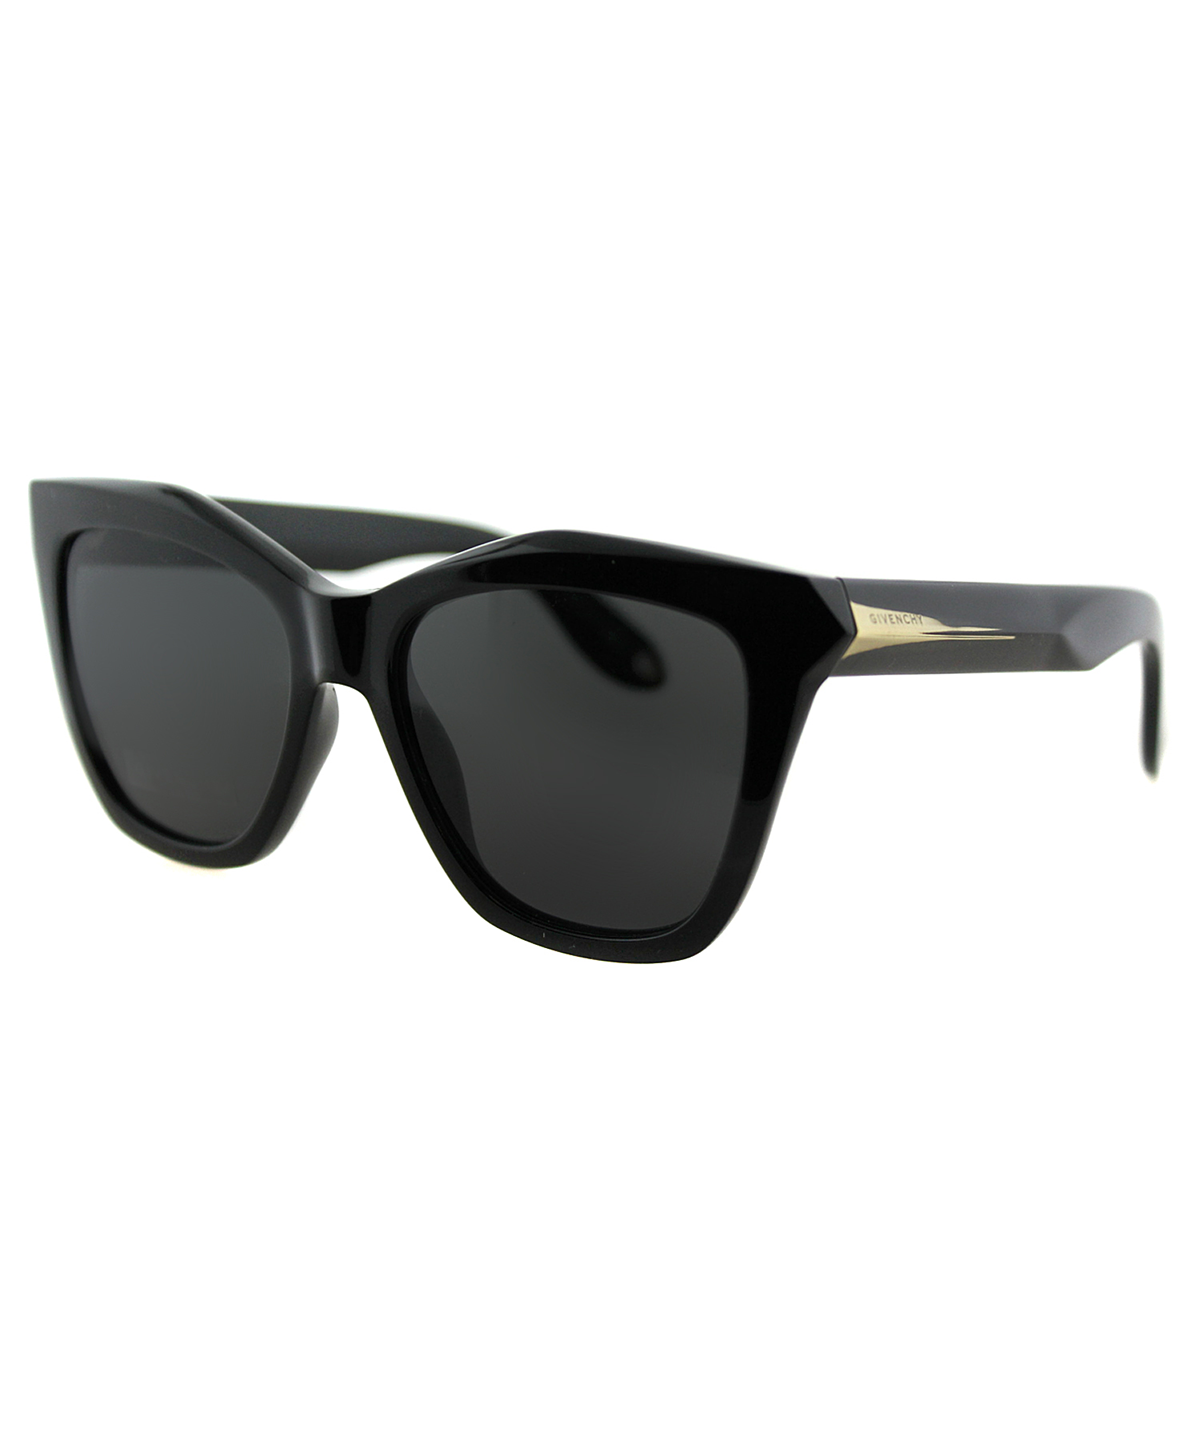 Givenchy Cat-eye Plastic Sunglasses In Black